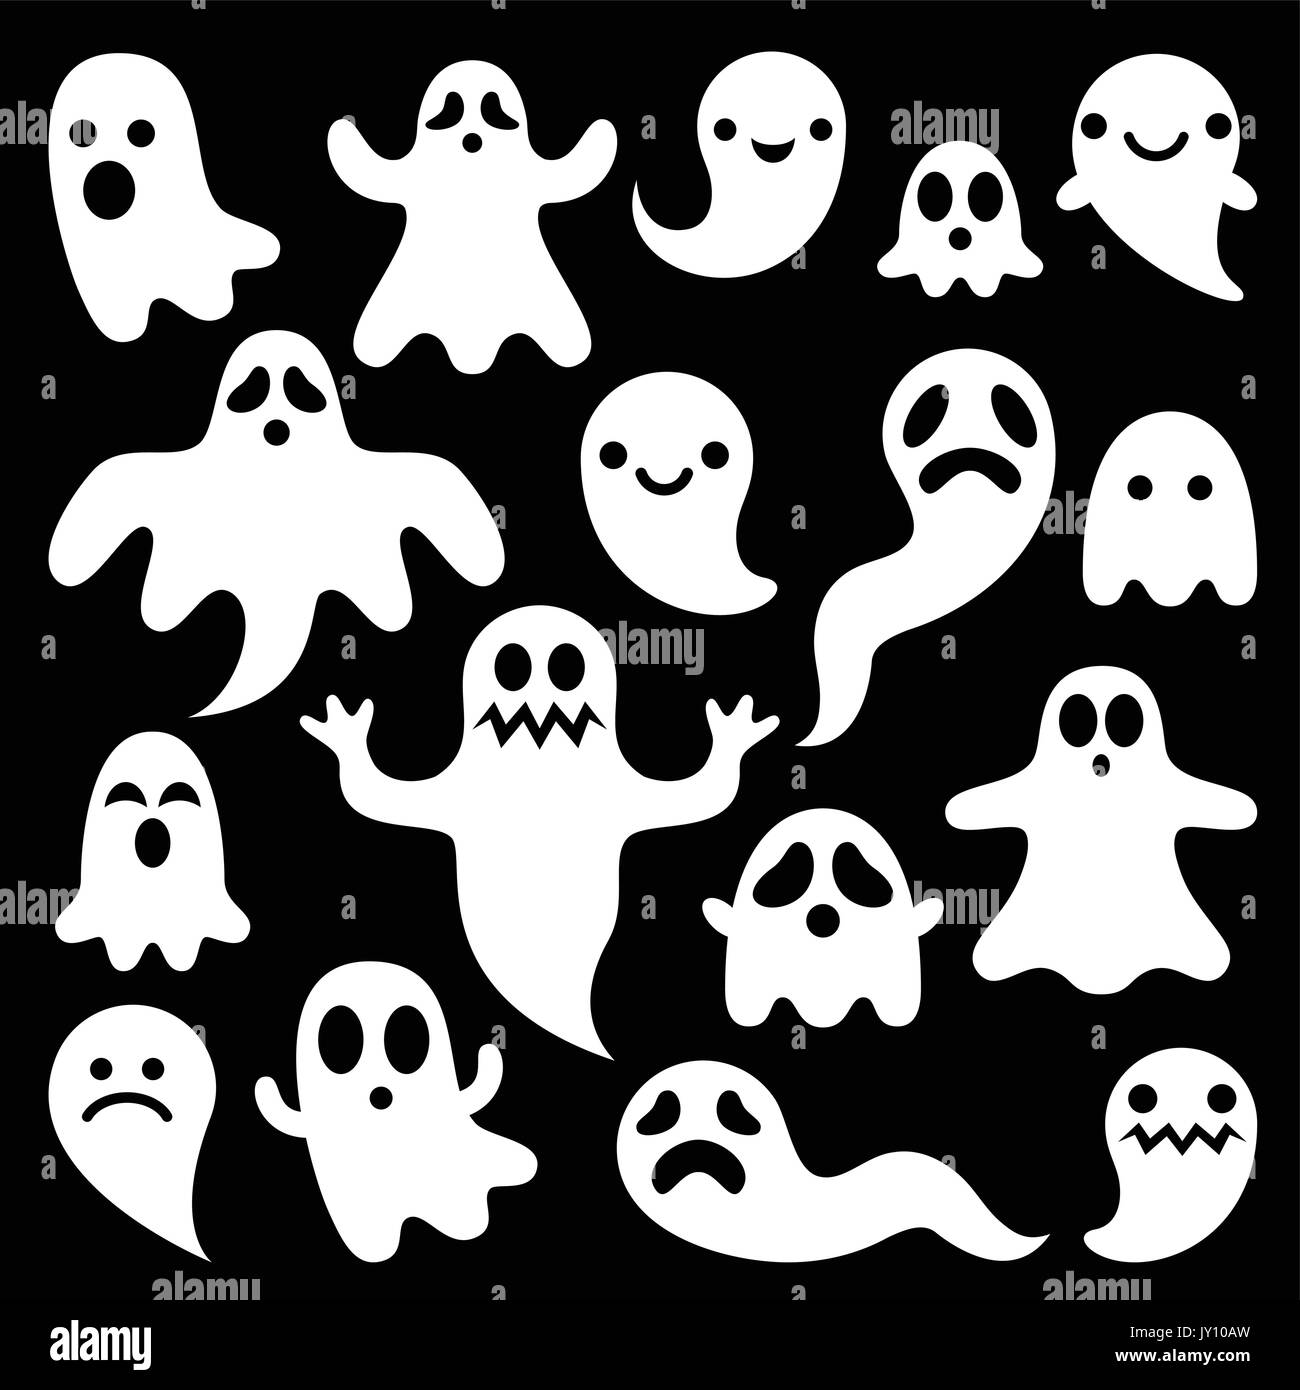 Attractive Scary Ghosts Design, Halloween Characters Icons Set Vector ...